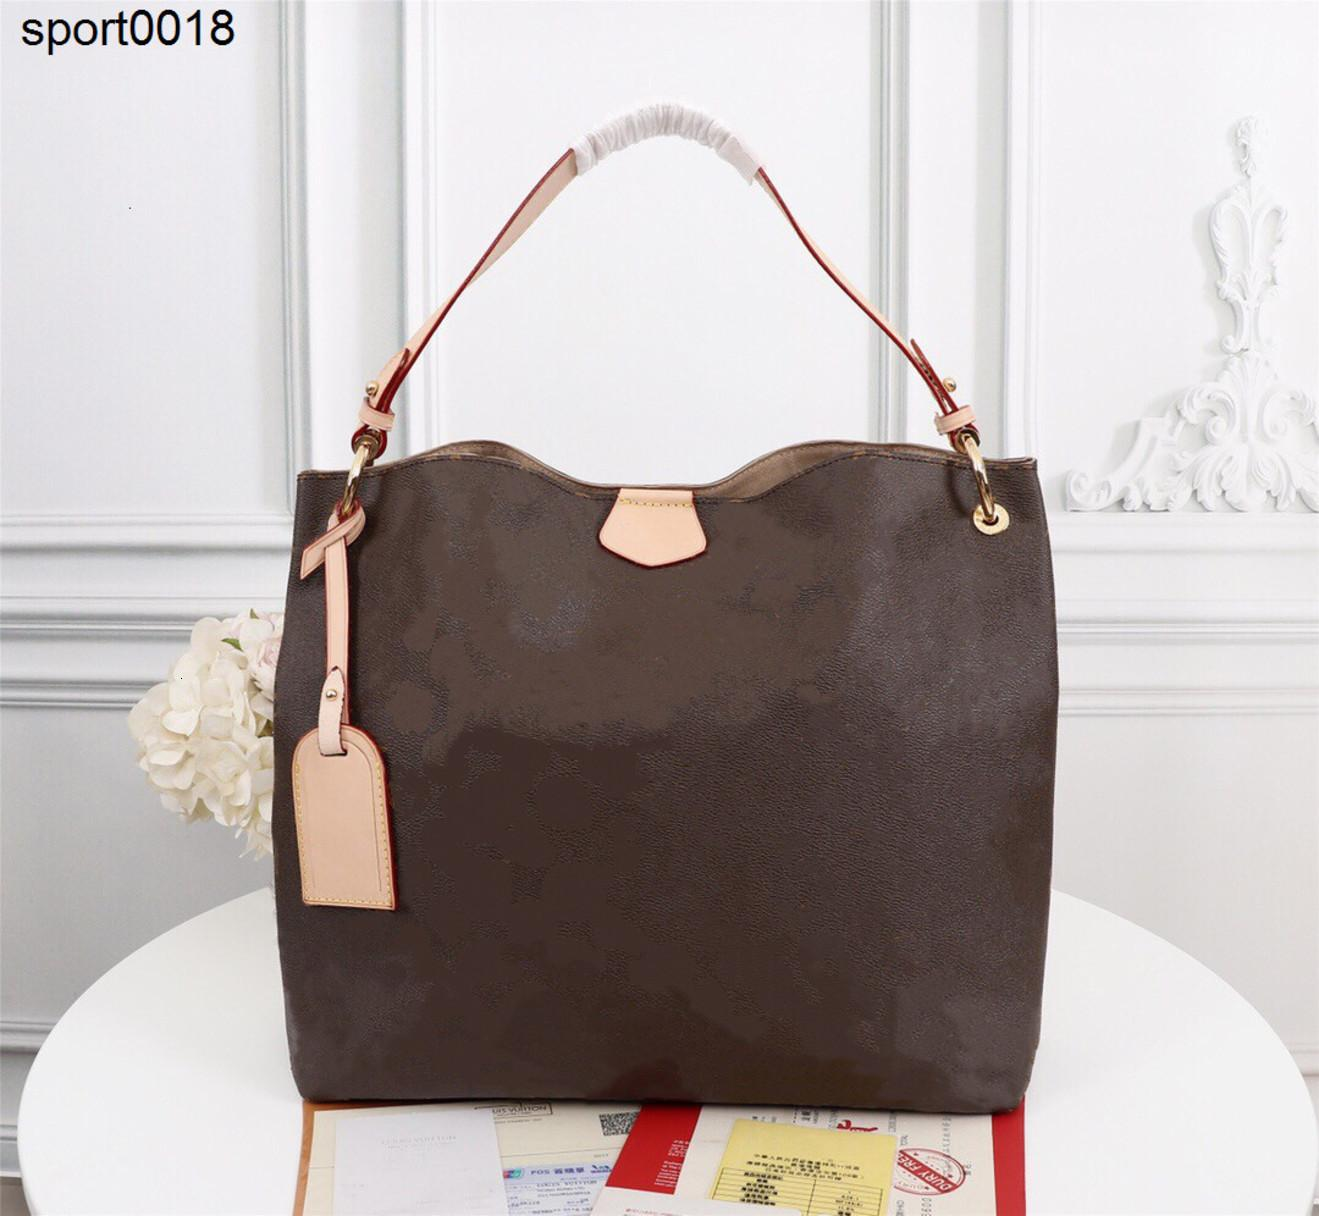 2021 mm PM Hobo in Classic Coated Canvas Extra-Stamyly Lightweight Genuine Pelle Cinturino Flat Strap Lady Borsa a tracolla